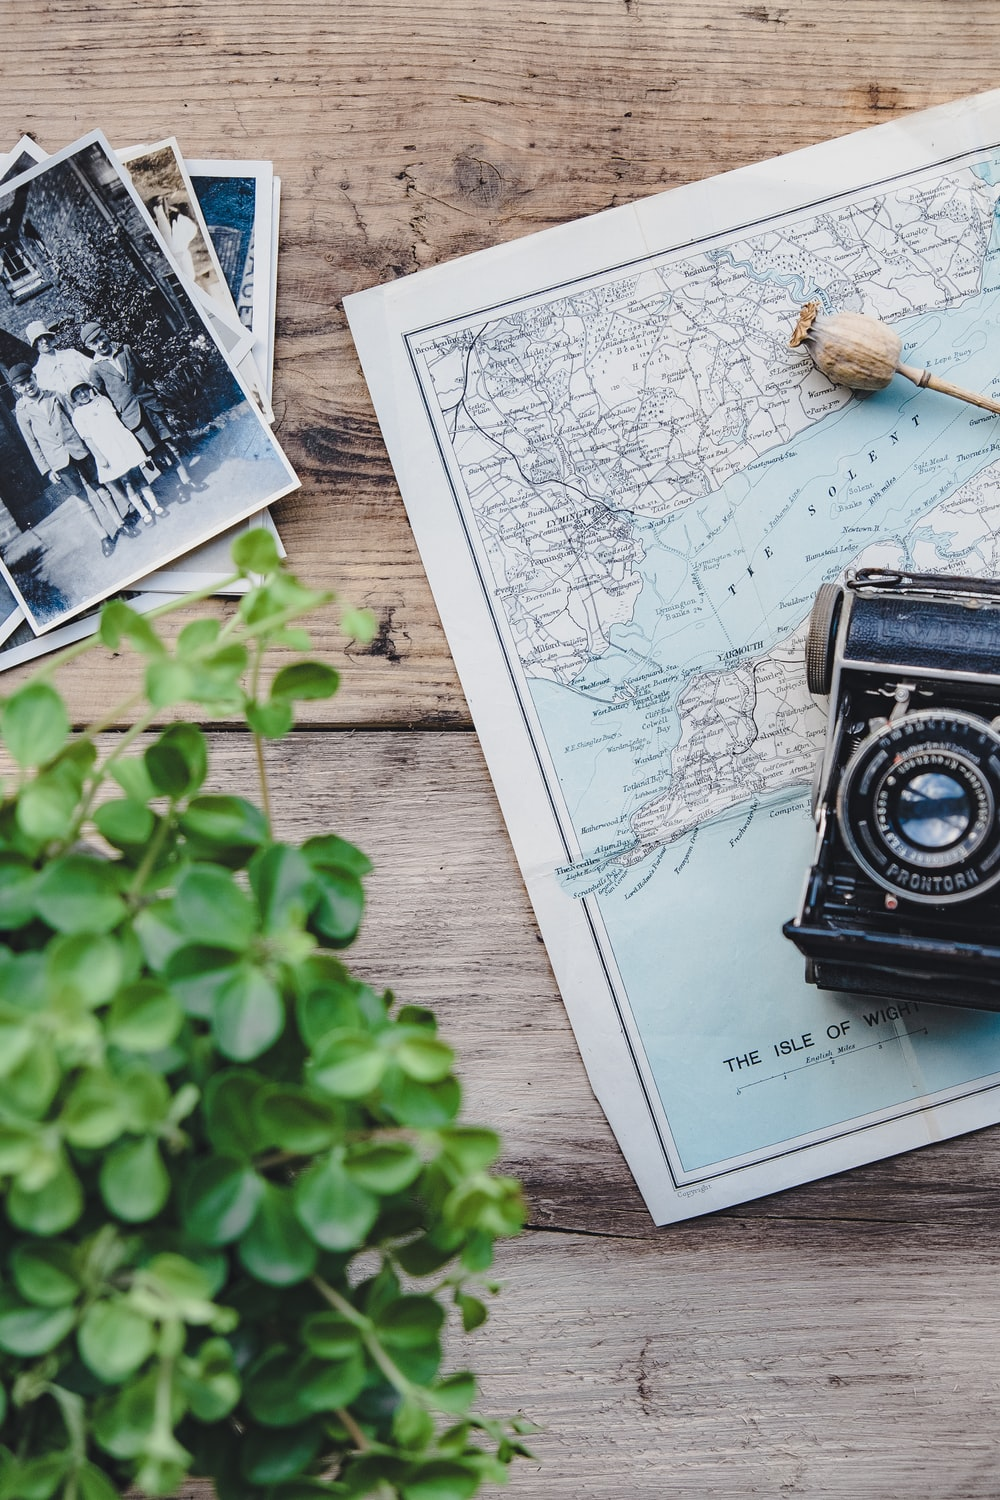 black and silver TLR camera on Isle Of Wight map